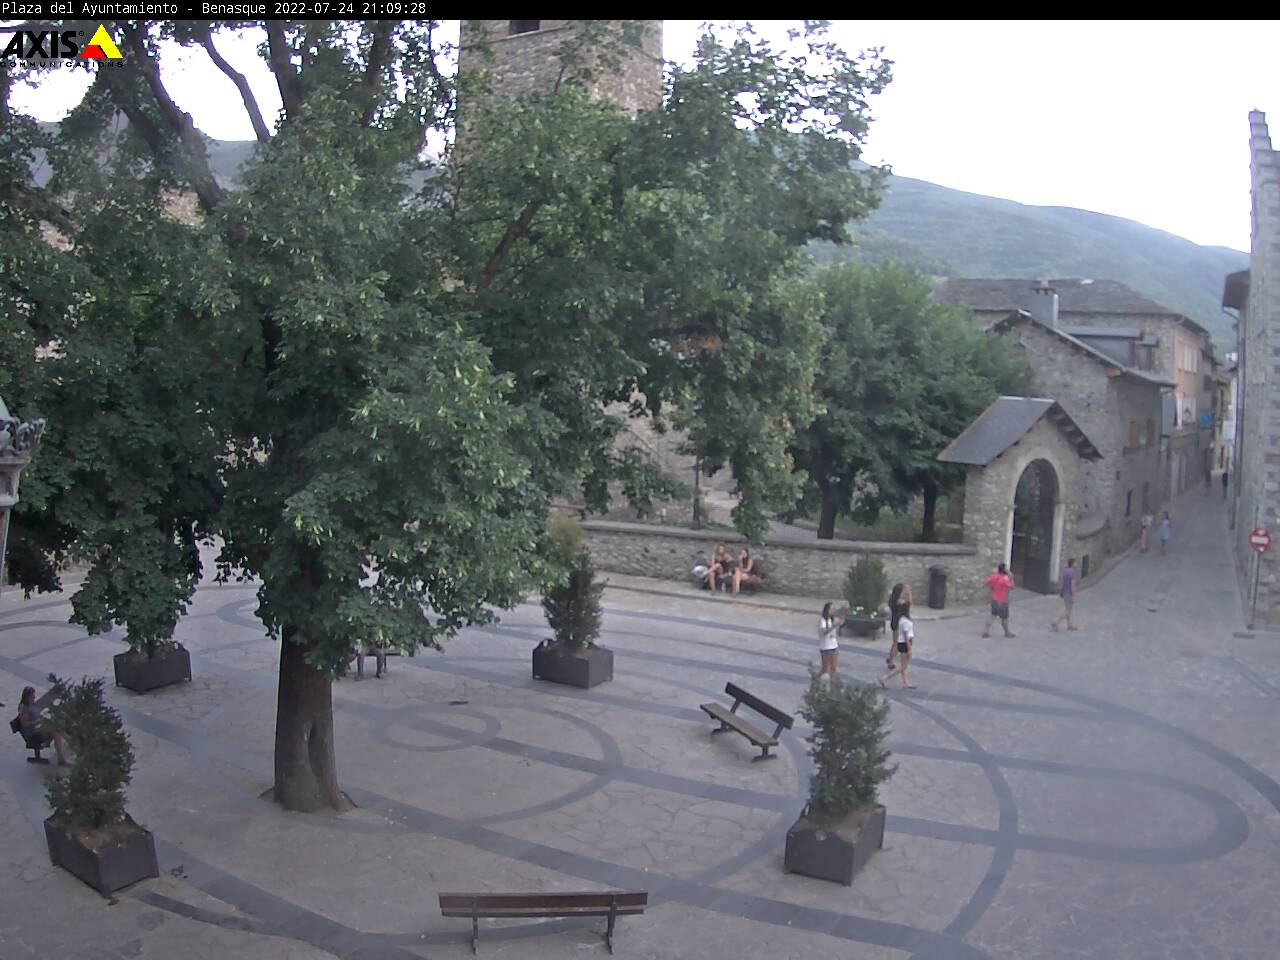 Webcam Plaza del ayuntamiento Benasque